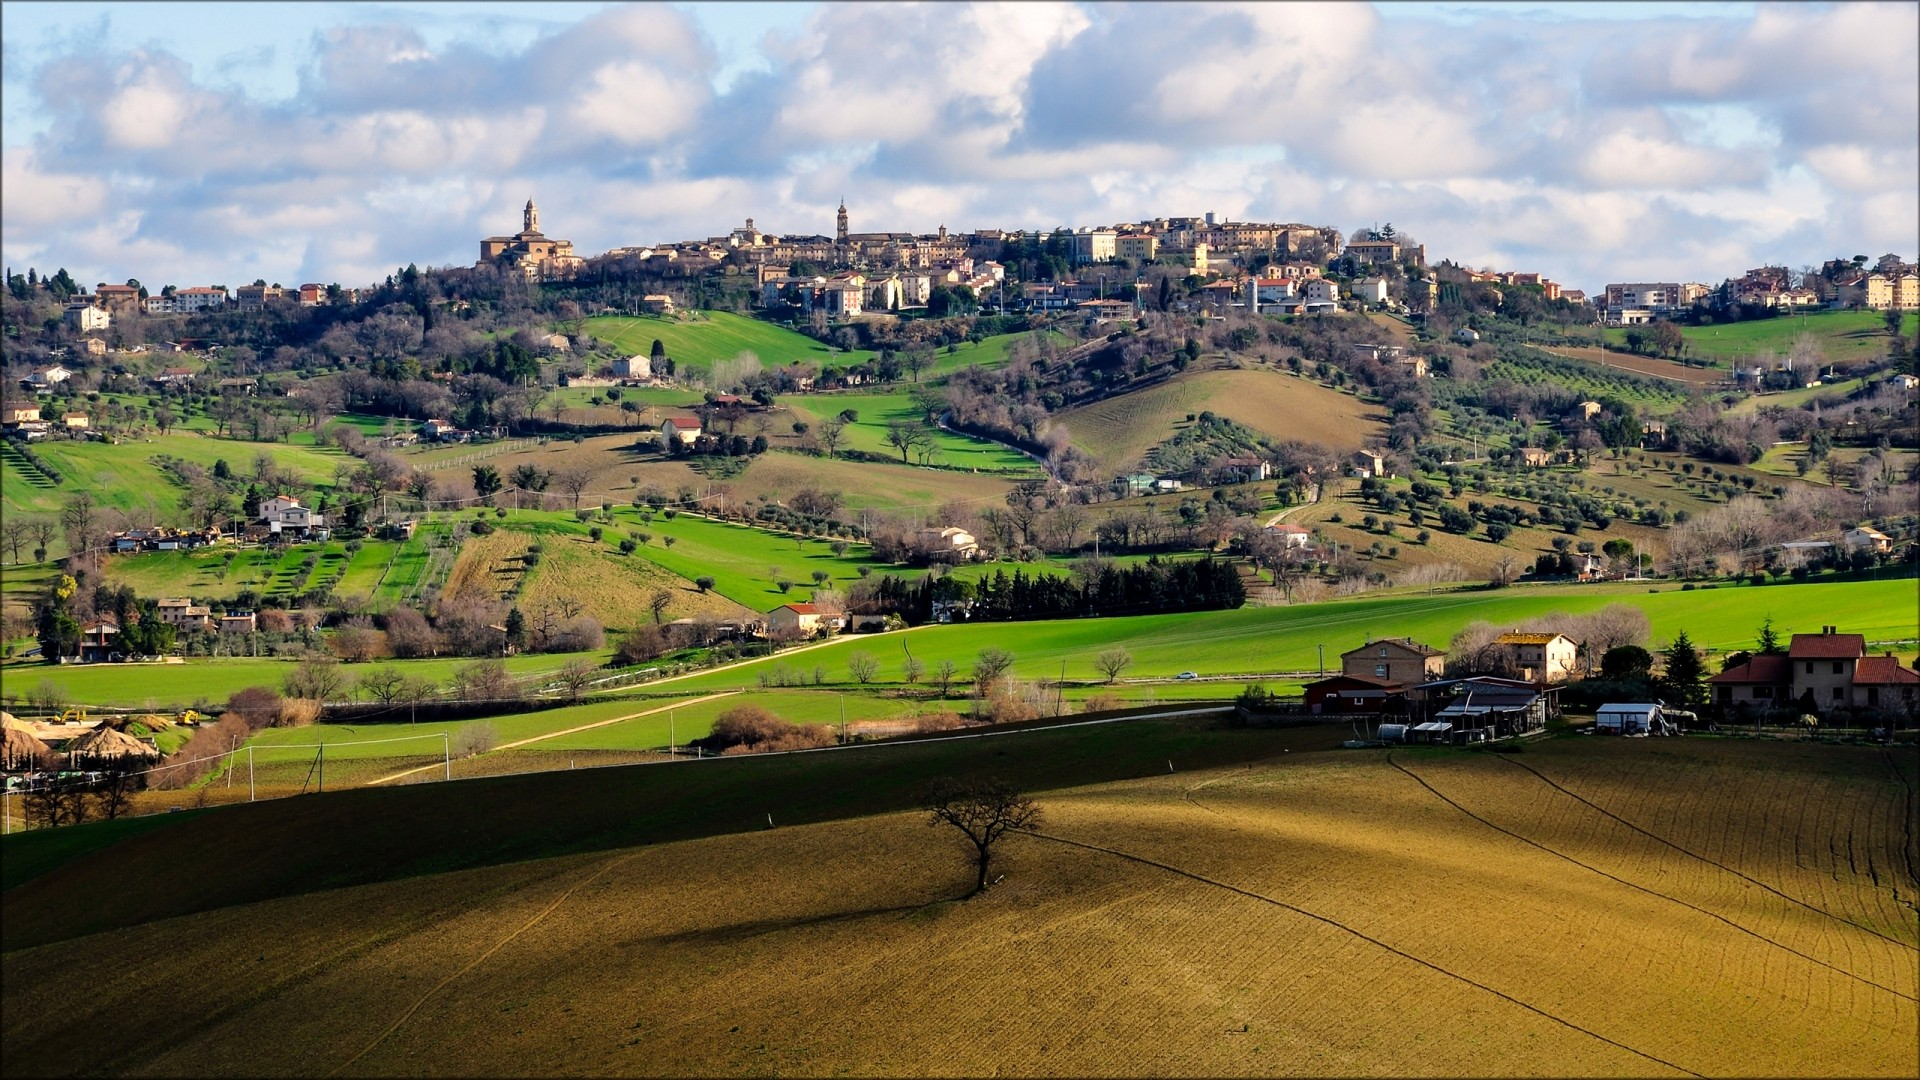 General 1920x1080 architecture house Italy trees landscape town church hills field clouds villages